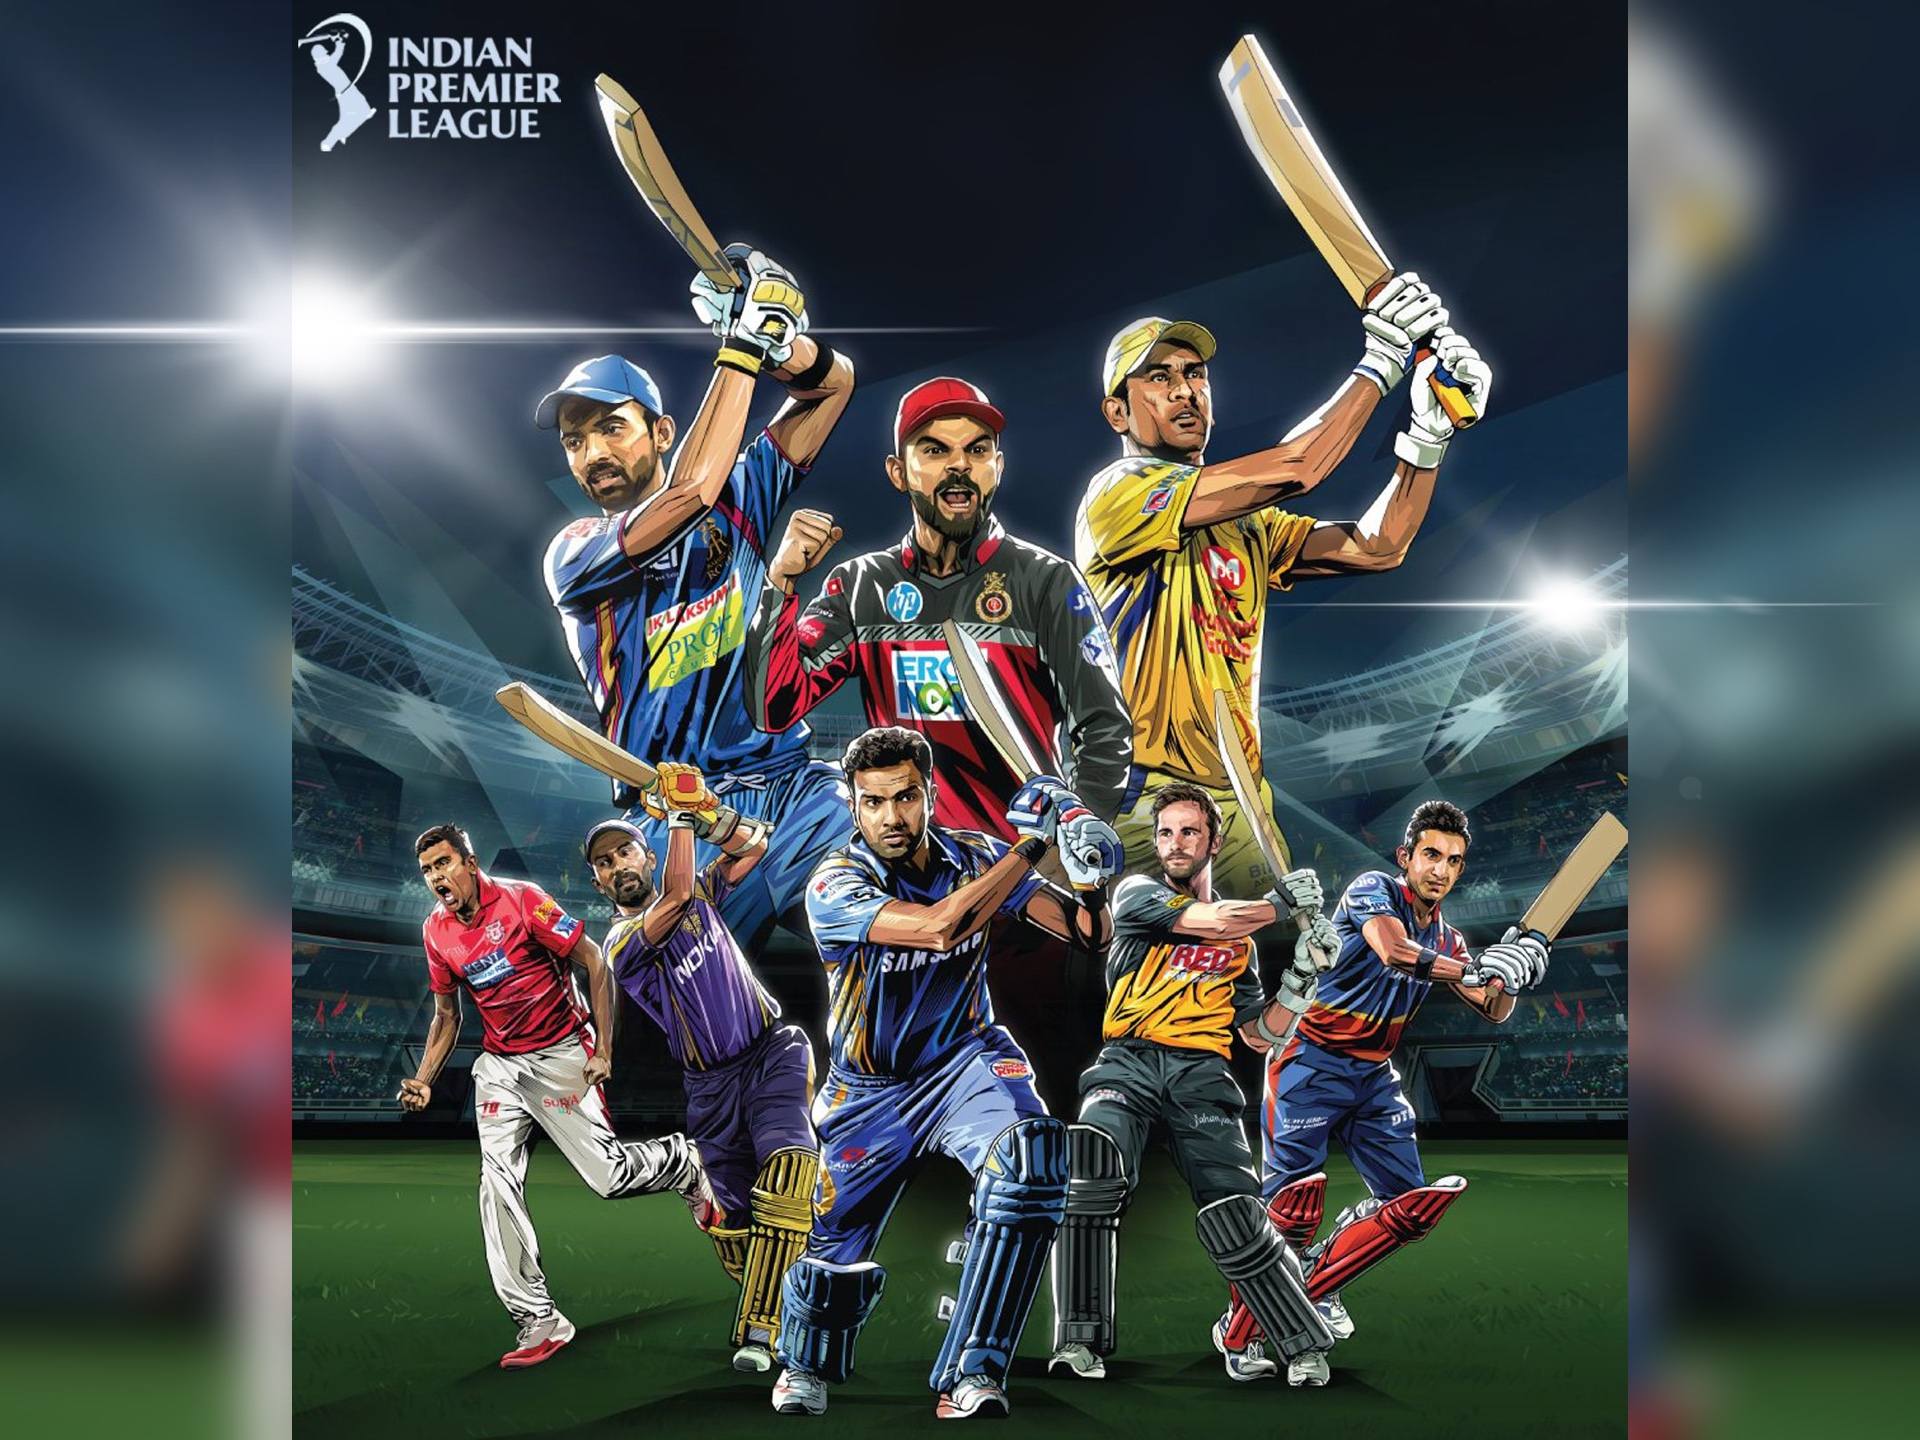 So it's no suprise that the bets and most profitable odds can be found during the IPL games.